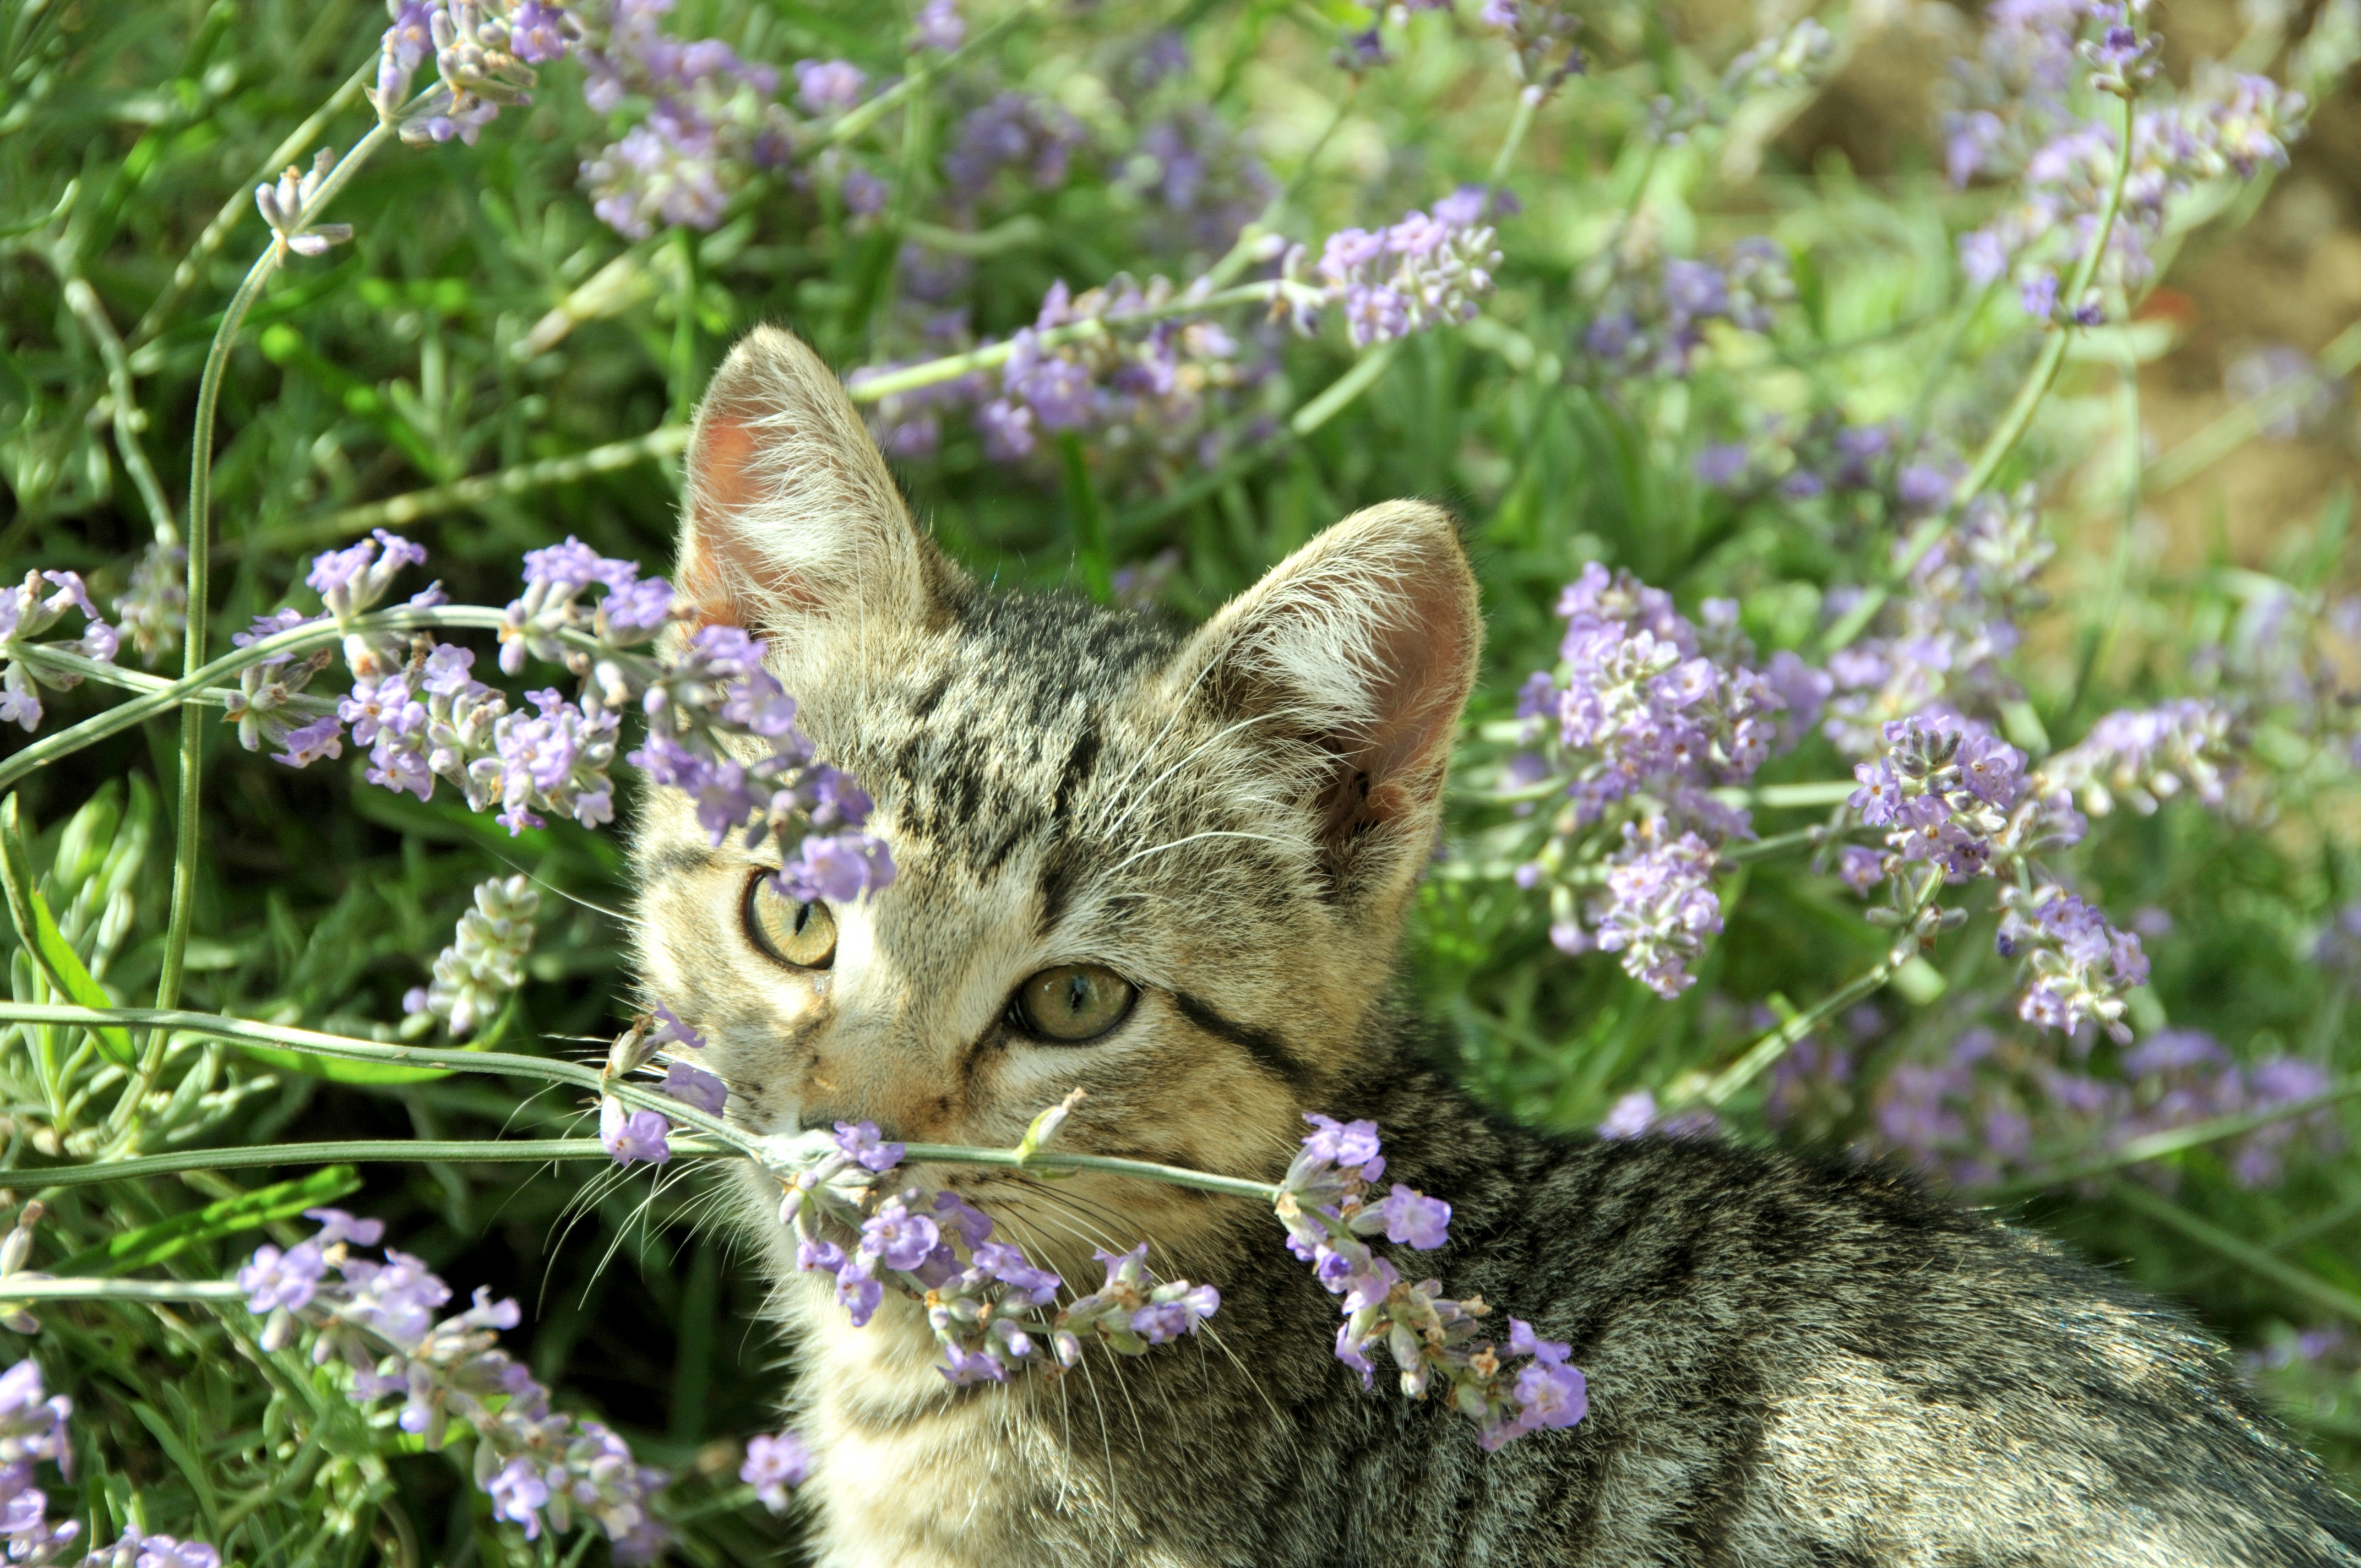 6. Cats love a bit of lavendar